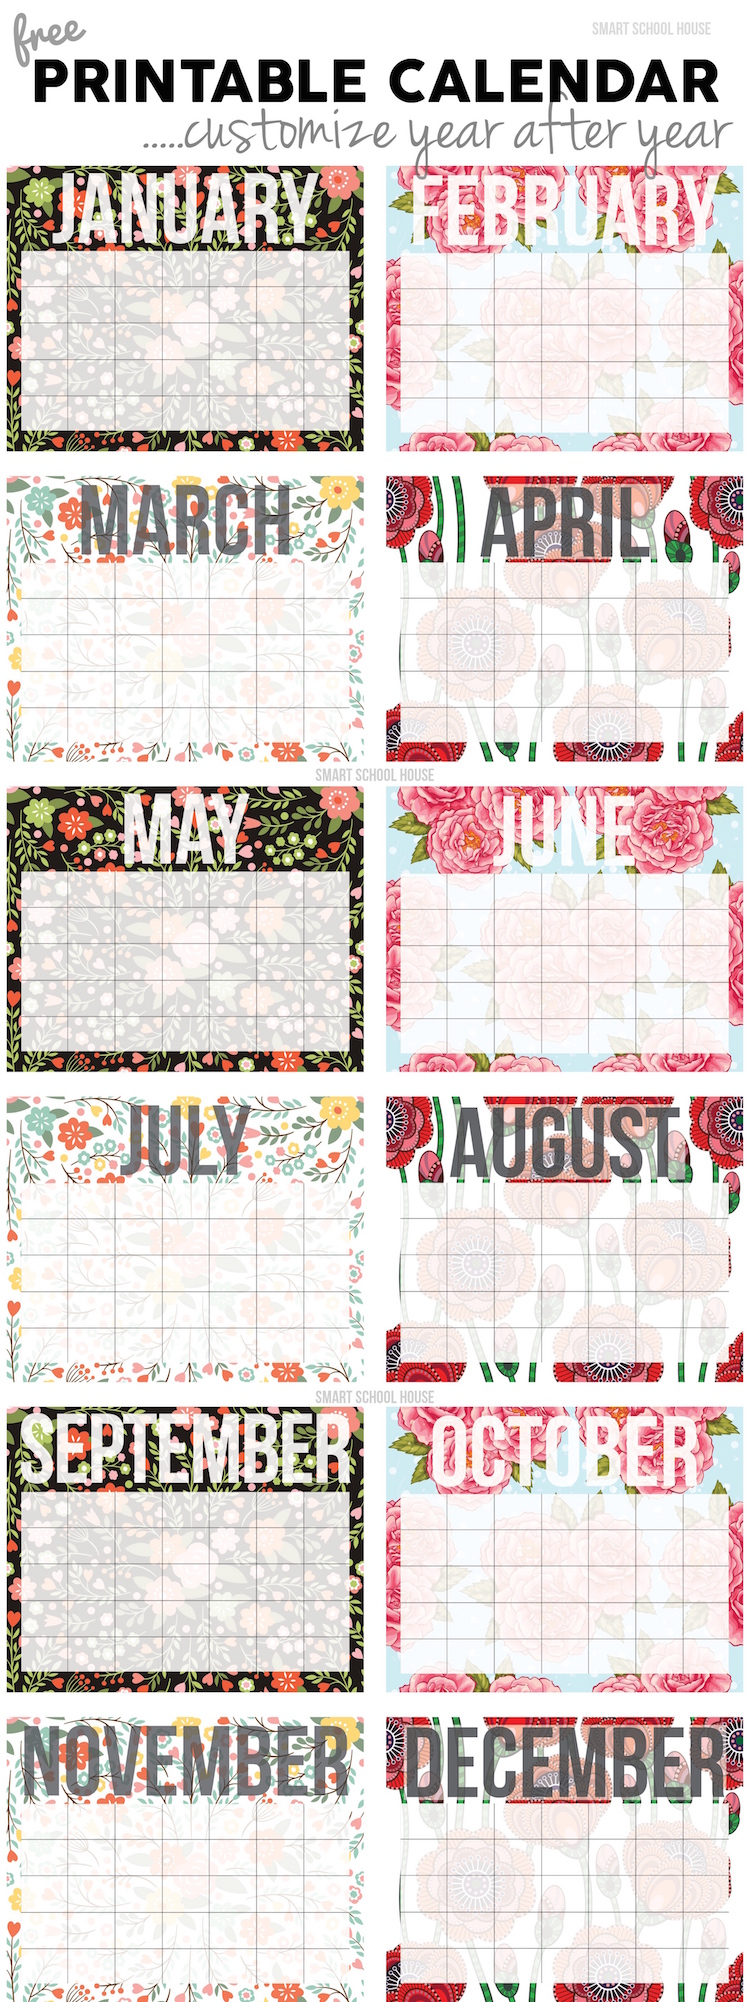 Free Printable Calendar. Use it year after year!